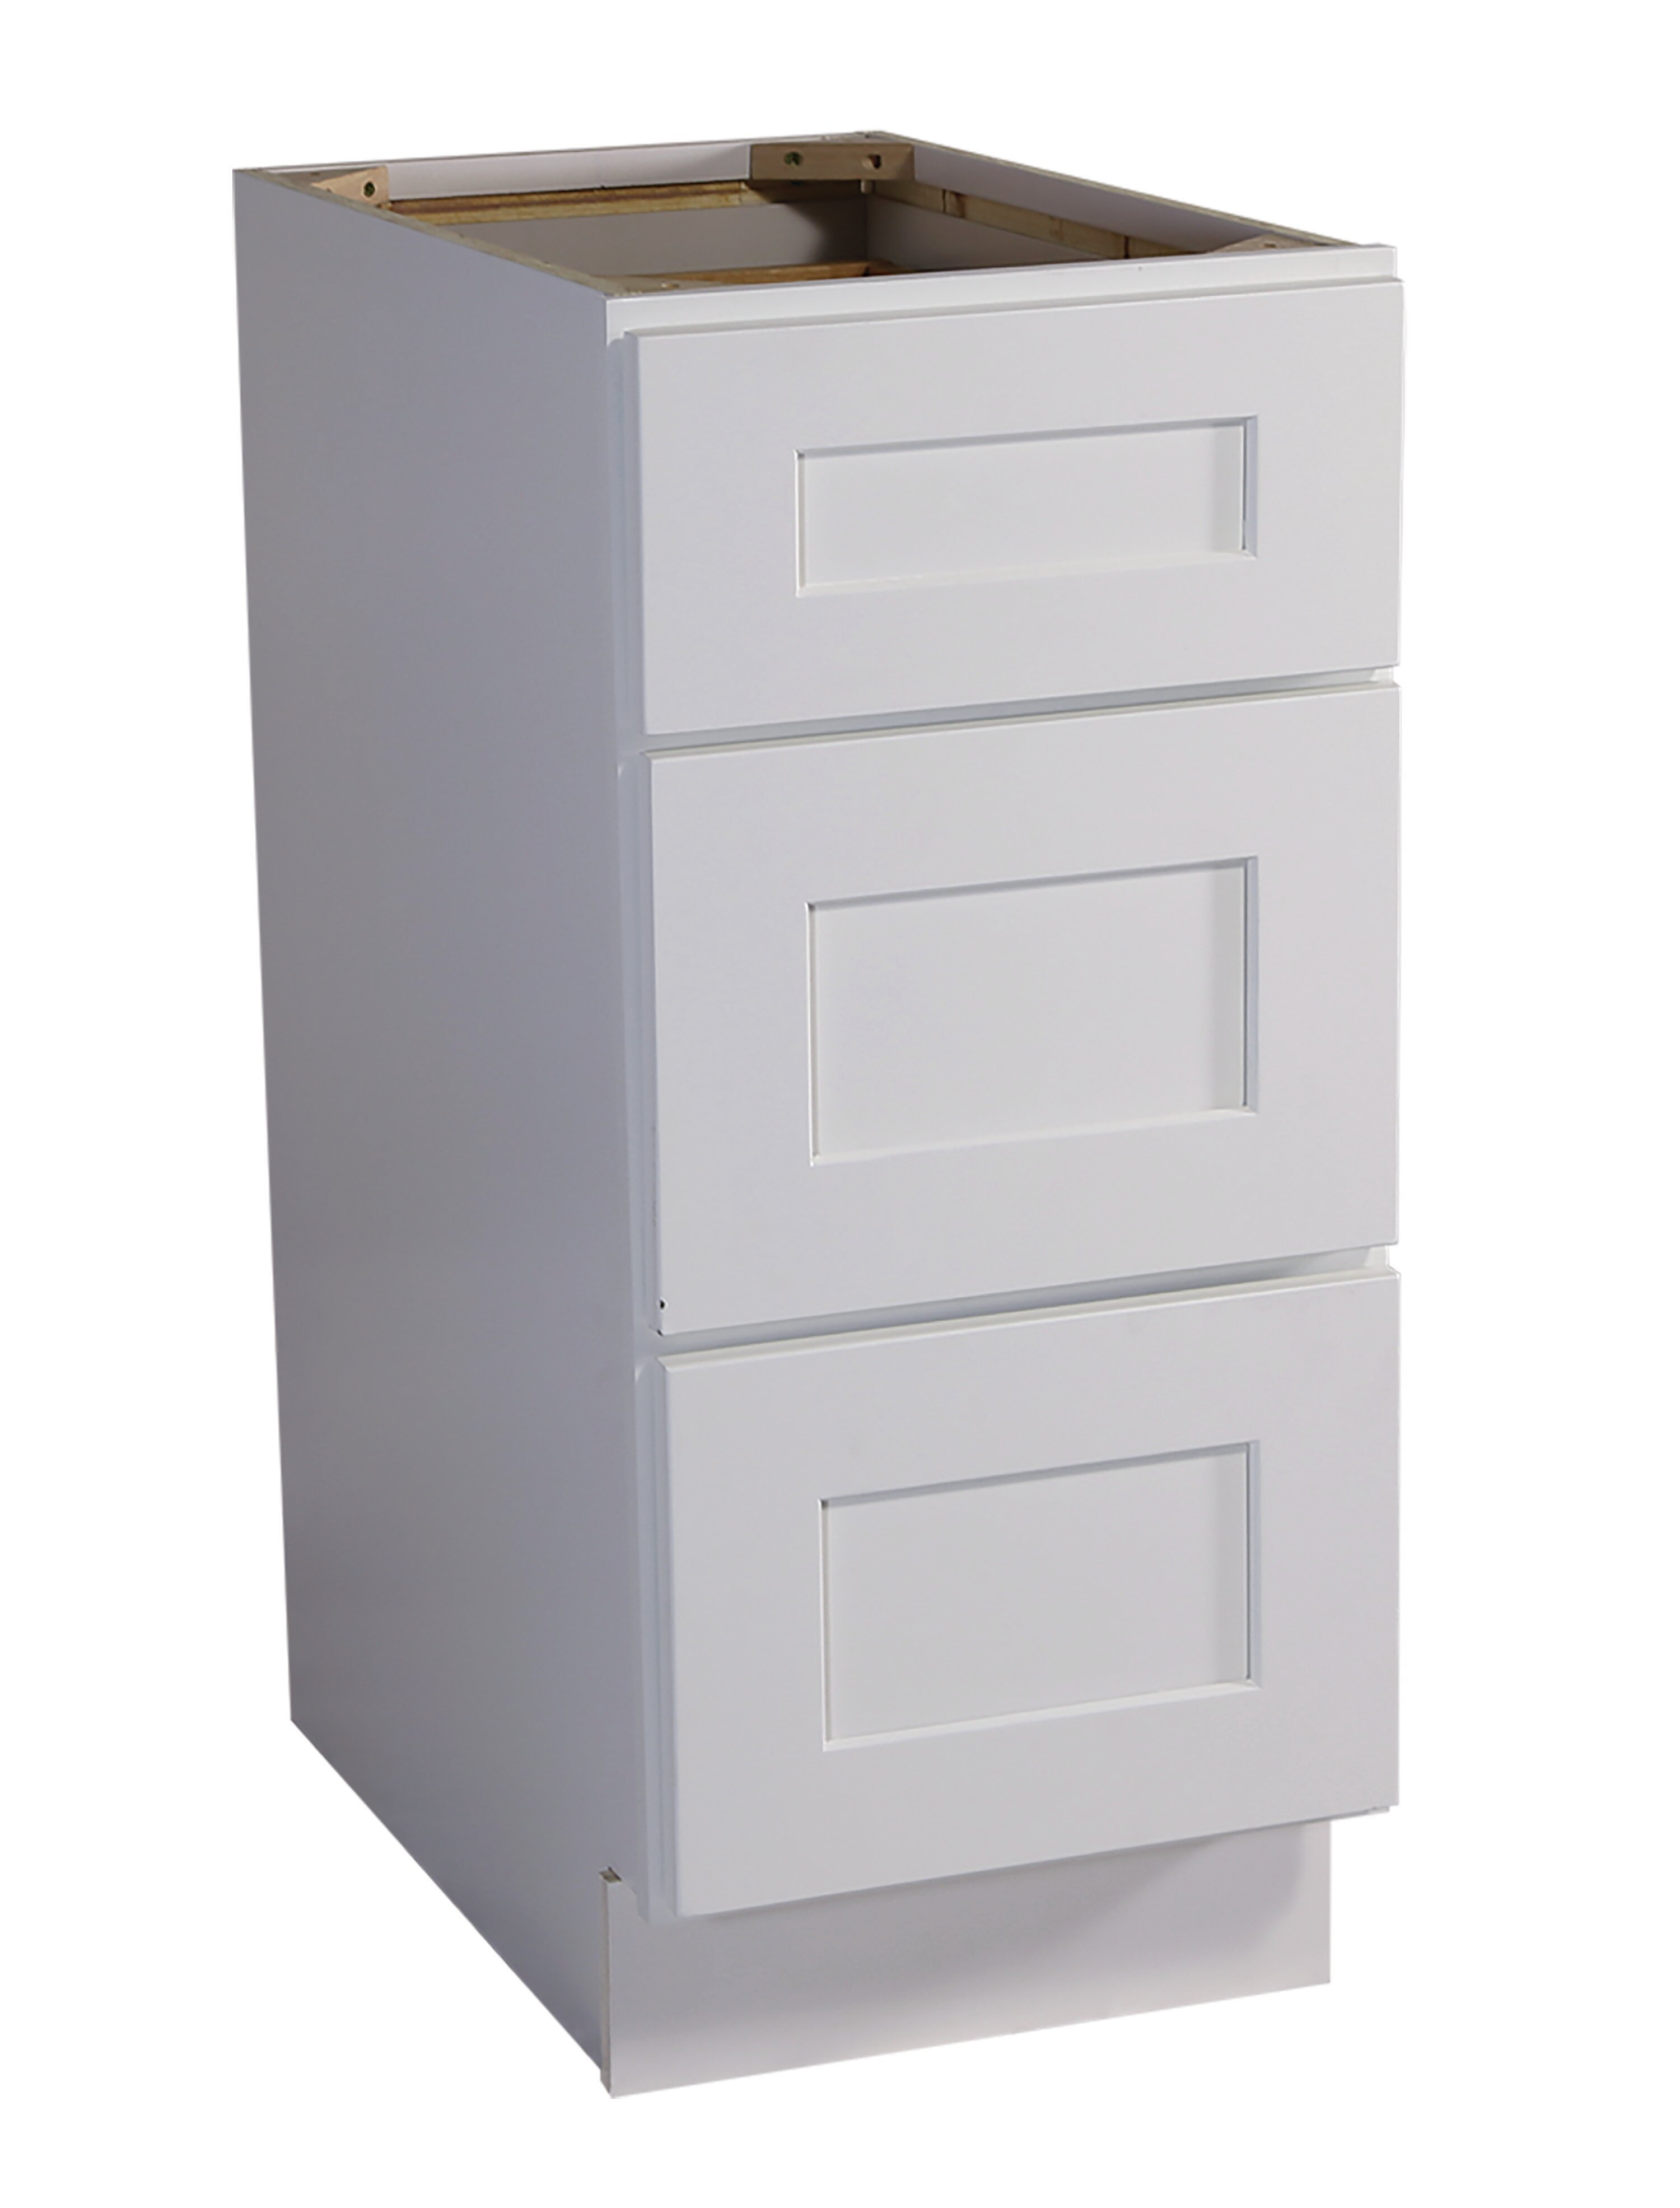 Ebern Designs Frits Fully Assembled 12x34 5x24 In Kitchen Drawer Base Cabinet In Espresso Wayfair